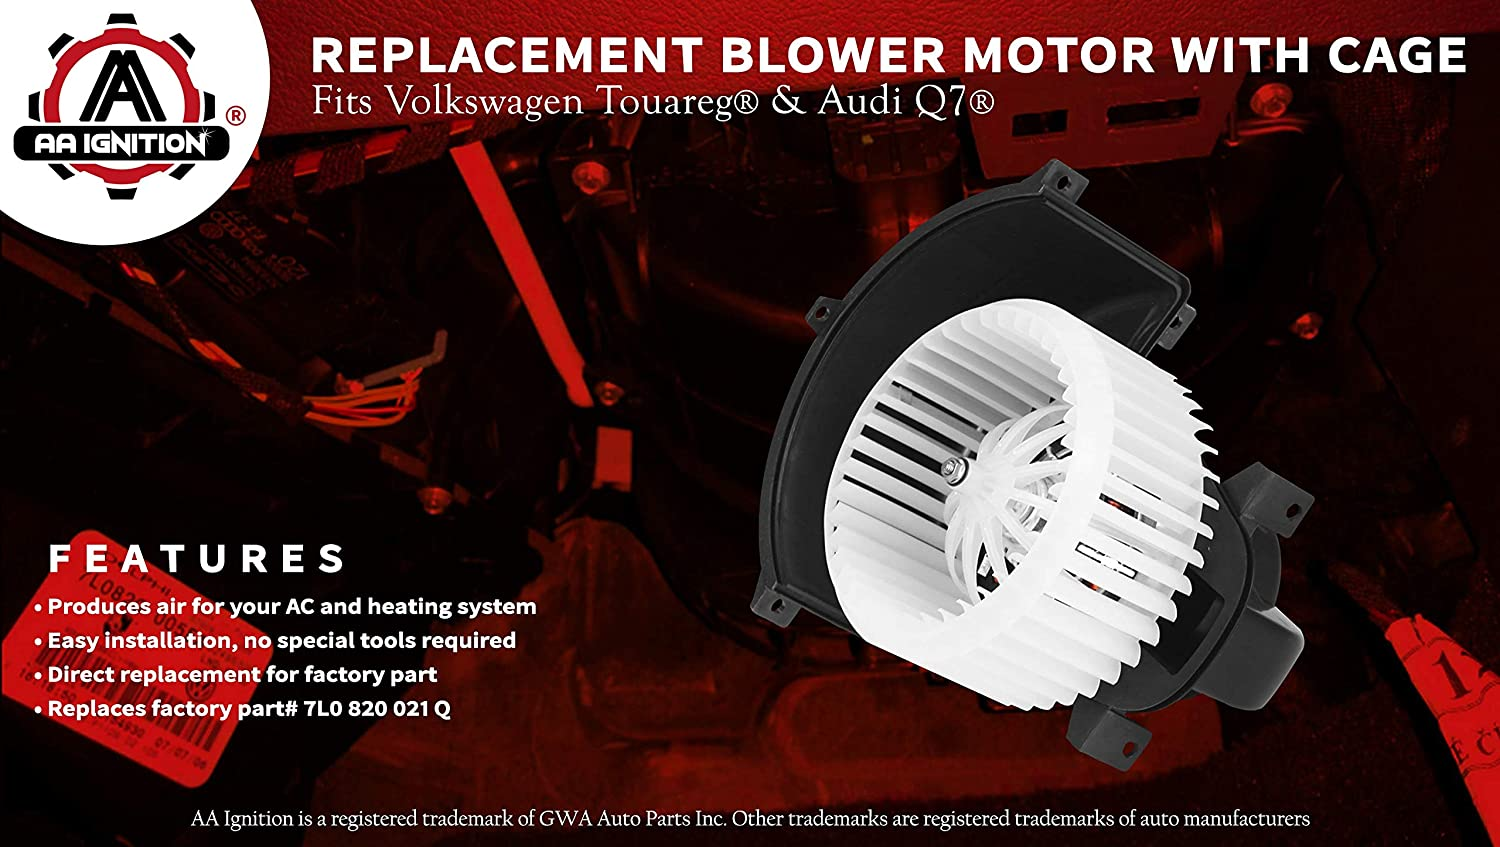 2009 Audi Q7 07-15 TYC 700262 Fits Volkswagen Touareg 2004 76994 2006 2005 Replaces# 7L0 820 021 Q AC Heater Blower Motor Fan White With Cage 2010 2008 7L0-820-021-Q 2007 4L1-820-021-B